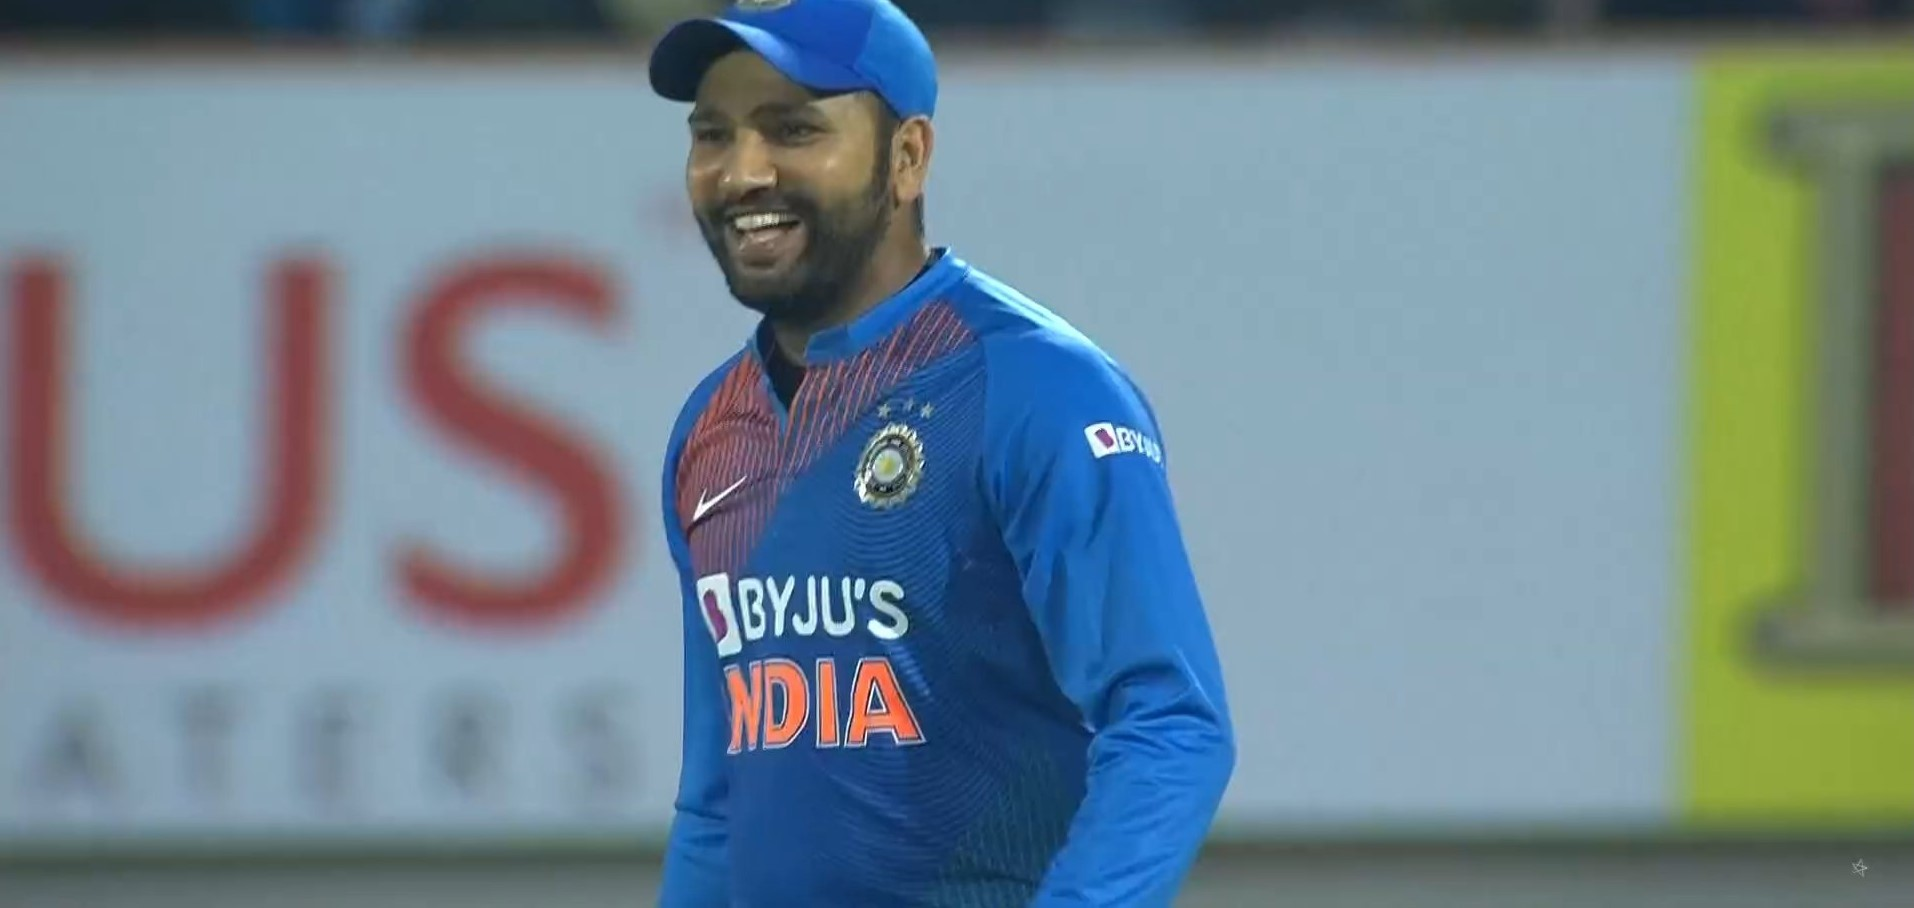 Rohit Sharma | Screengrab